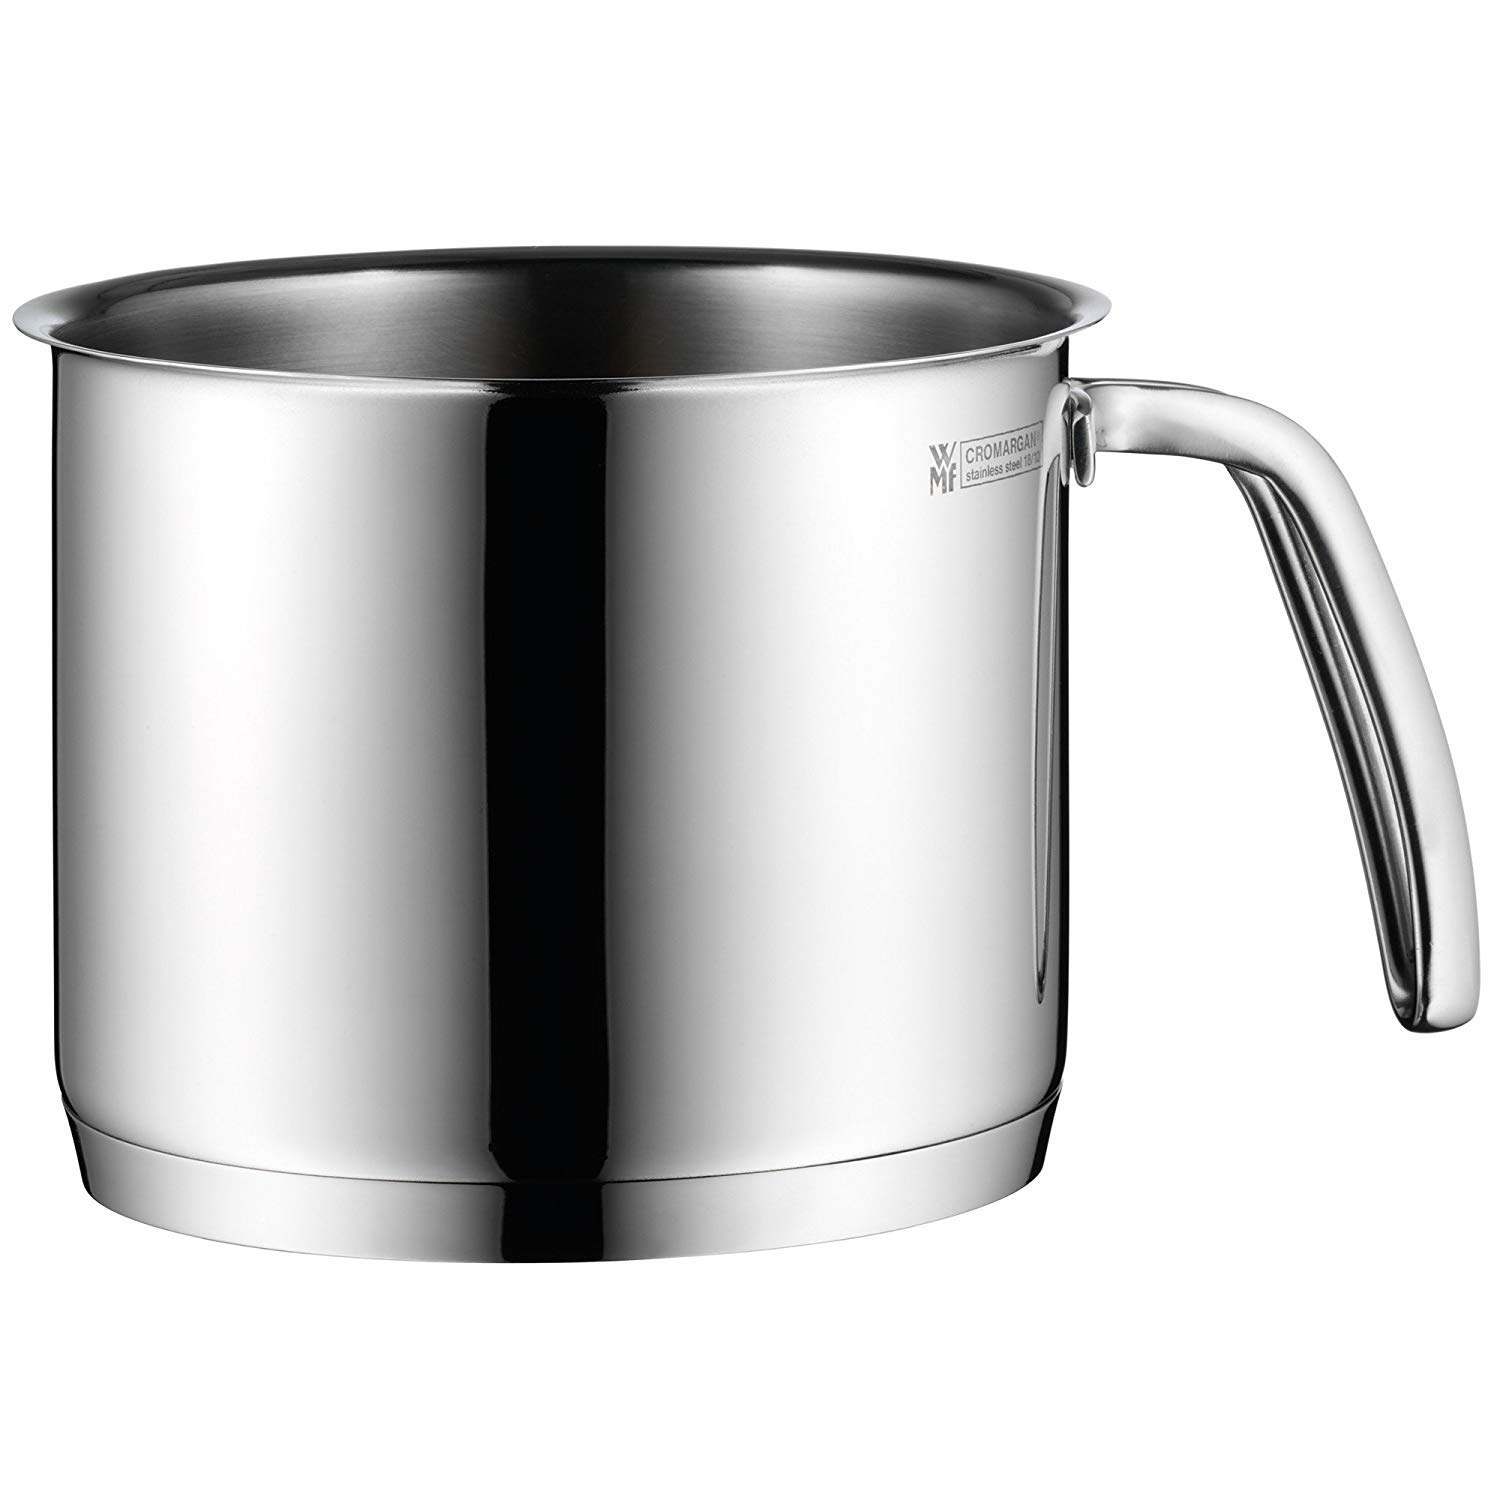 WMF Milk Pot Ø 14 cm Approx. 1.7L Provence Plus Pouring Rim Cromargan Stainless Steel Polished Suitable for Induction Hobs Dishwasher-Safe